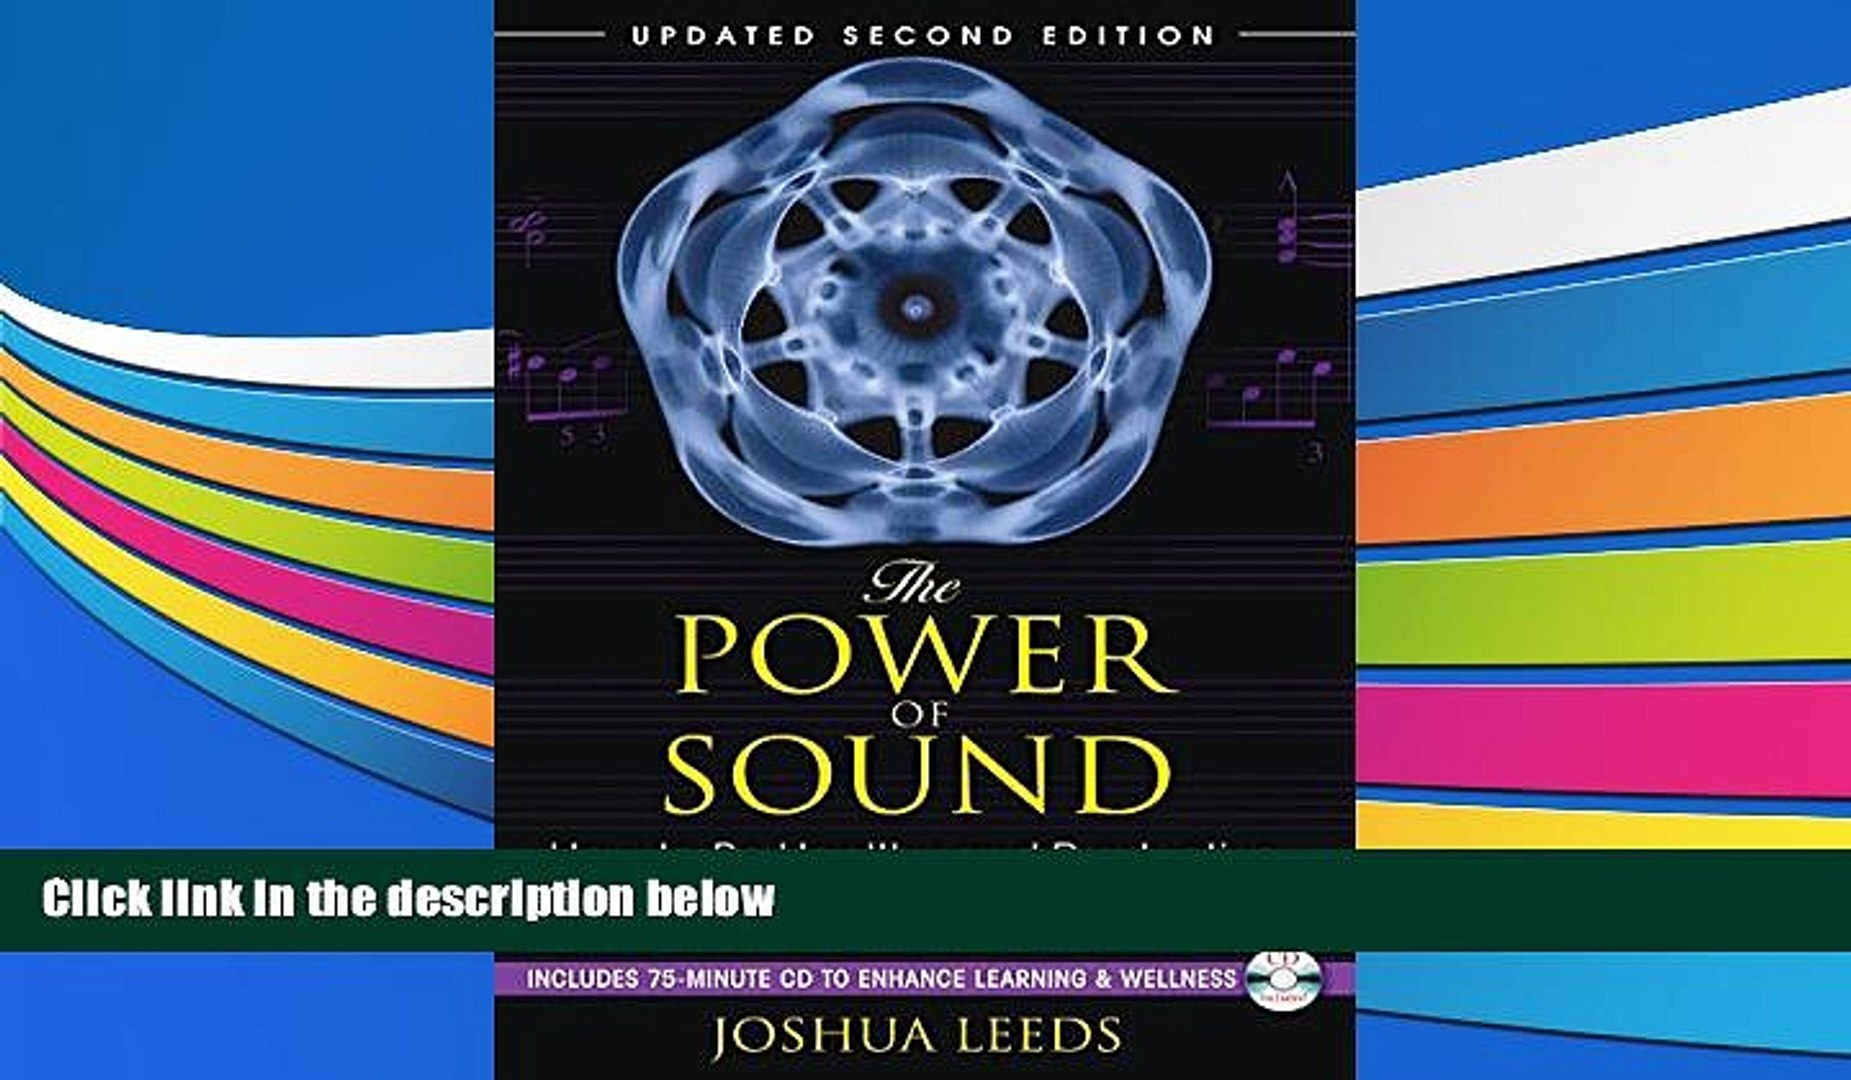 Audiobook  The Power of Sound: How to Be Healthy and Productive Using Music and Sound Joshua